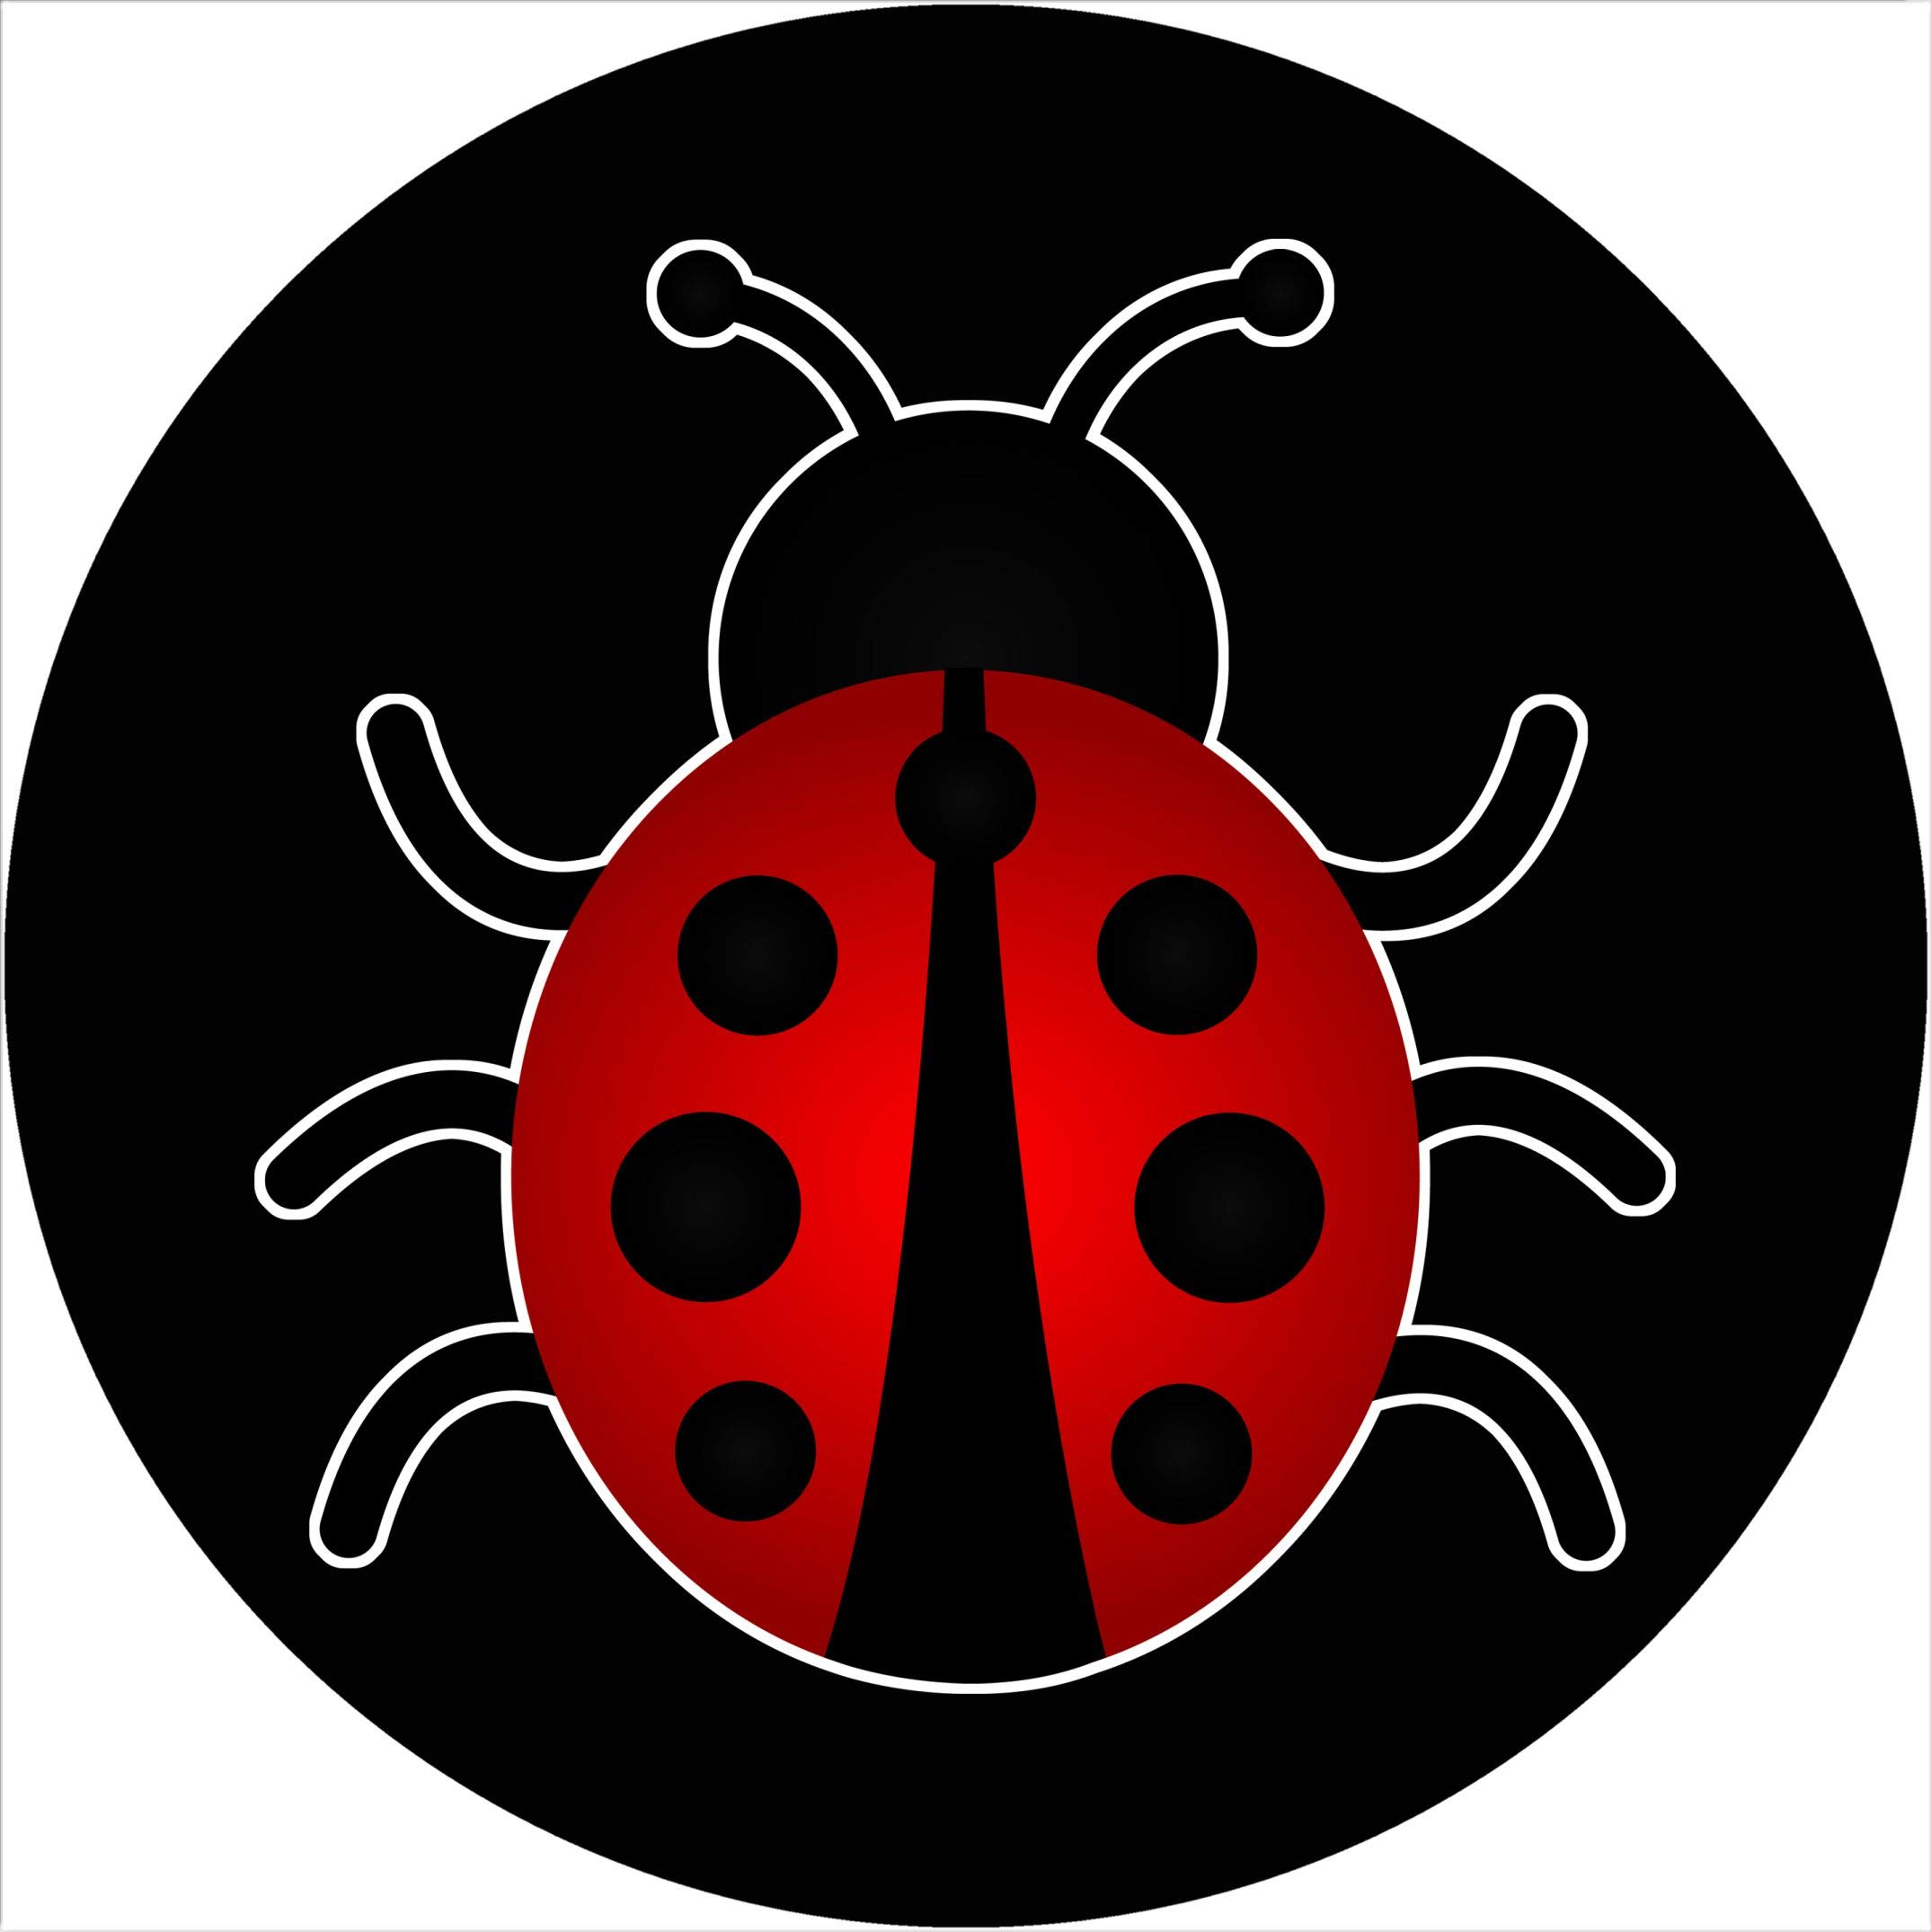 TIRE COVER CENTRAL Ladybug on Black Spare Tire Cover for 33X12.5X_Jeep RV Camper and More (Select from Popular Sizes in Drop Down menu or Contact us by TIRE COVER CENTRAL